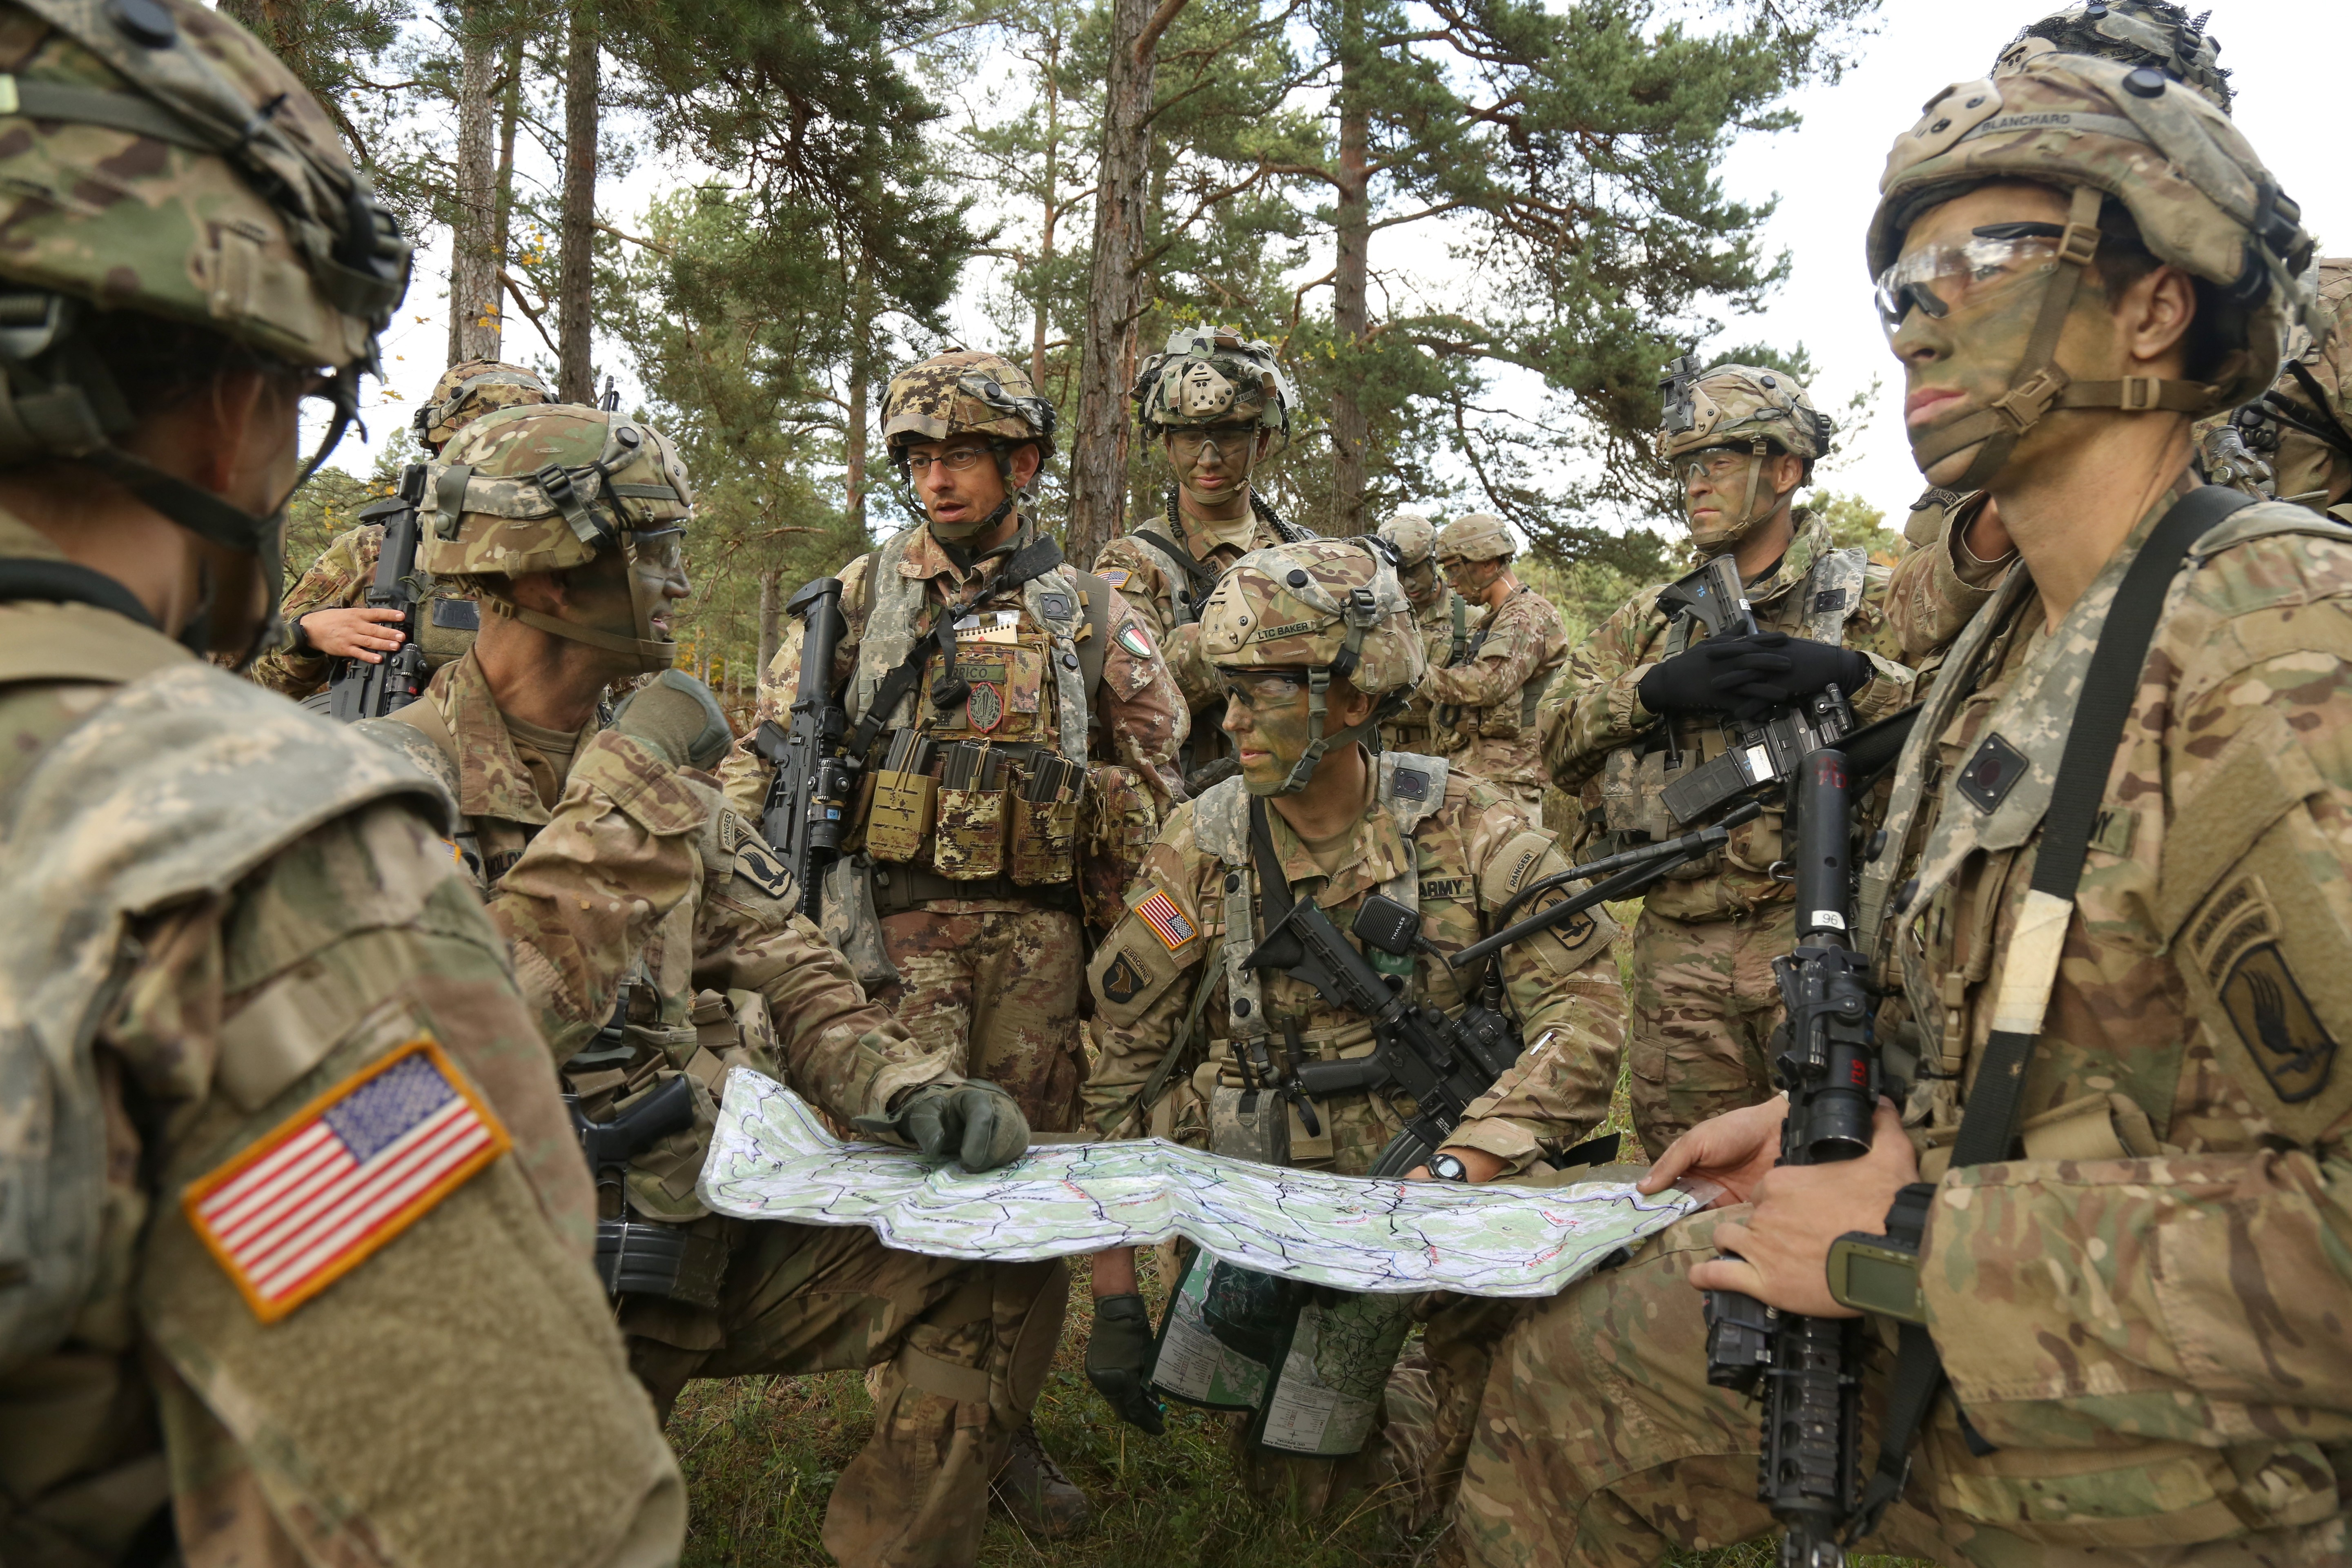 Army gains in readiness are just the beginning, chief of